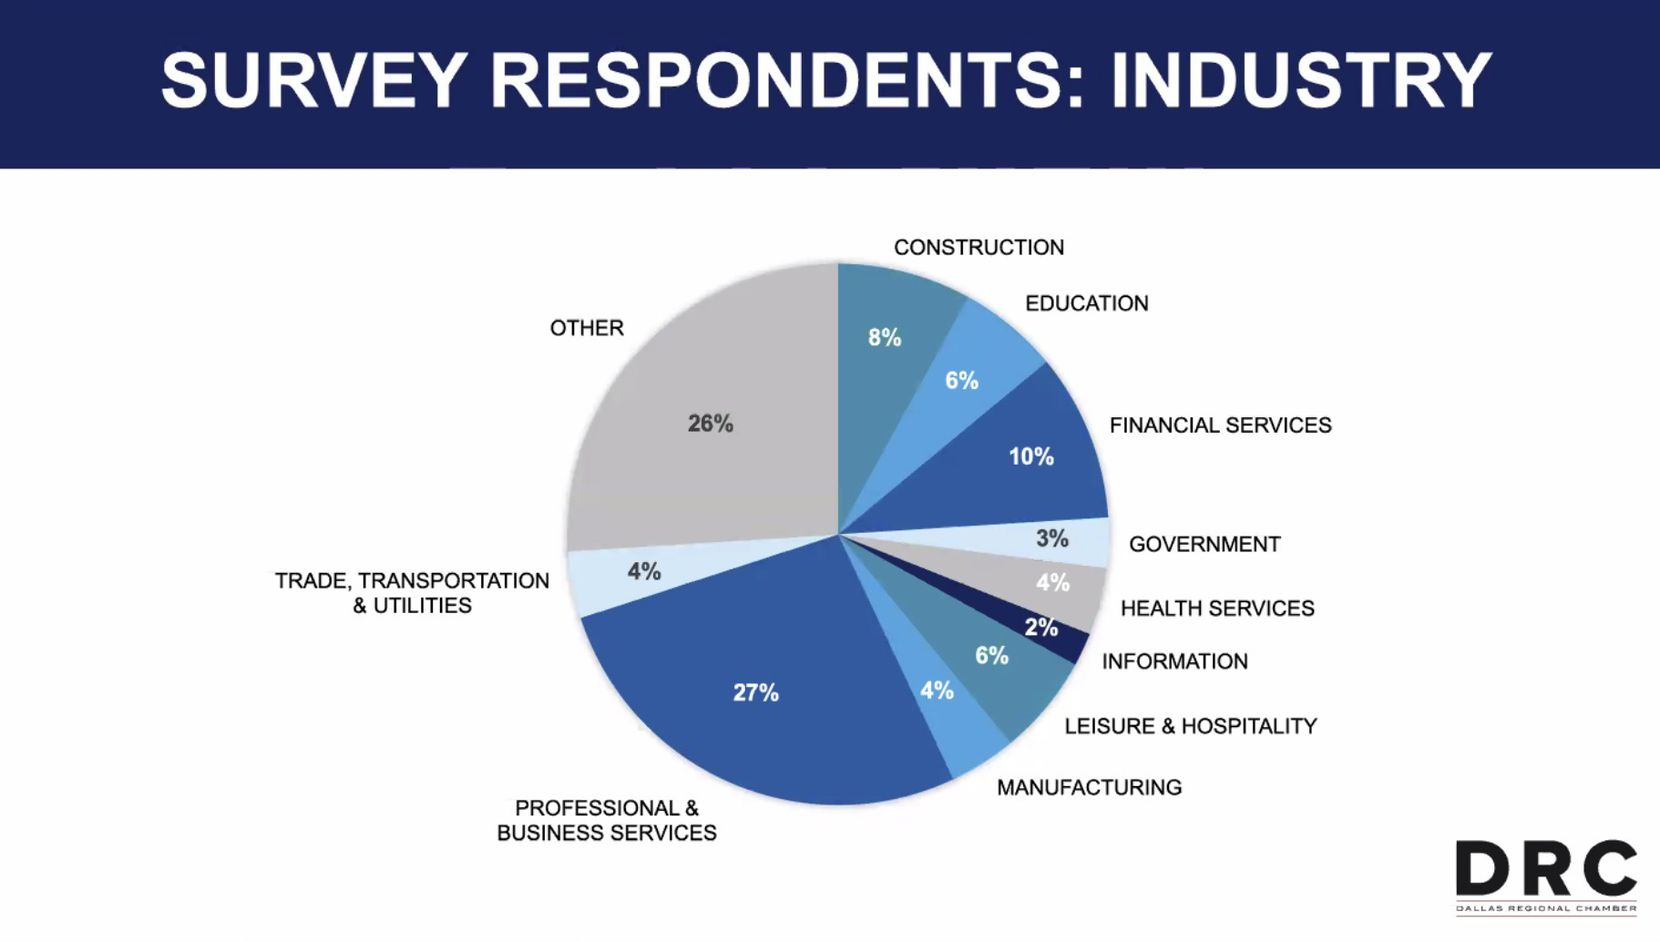 Dallas Regional Chamber 2021 Future of Work survey results